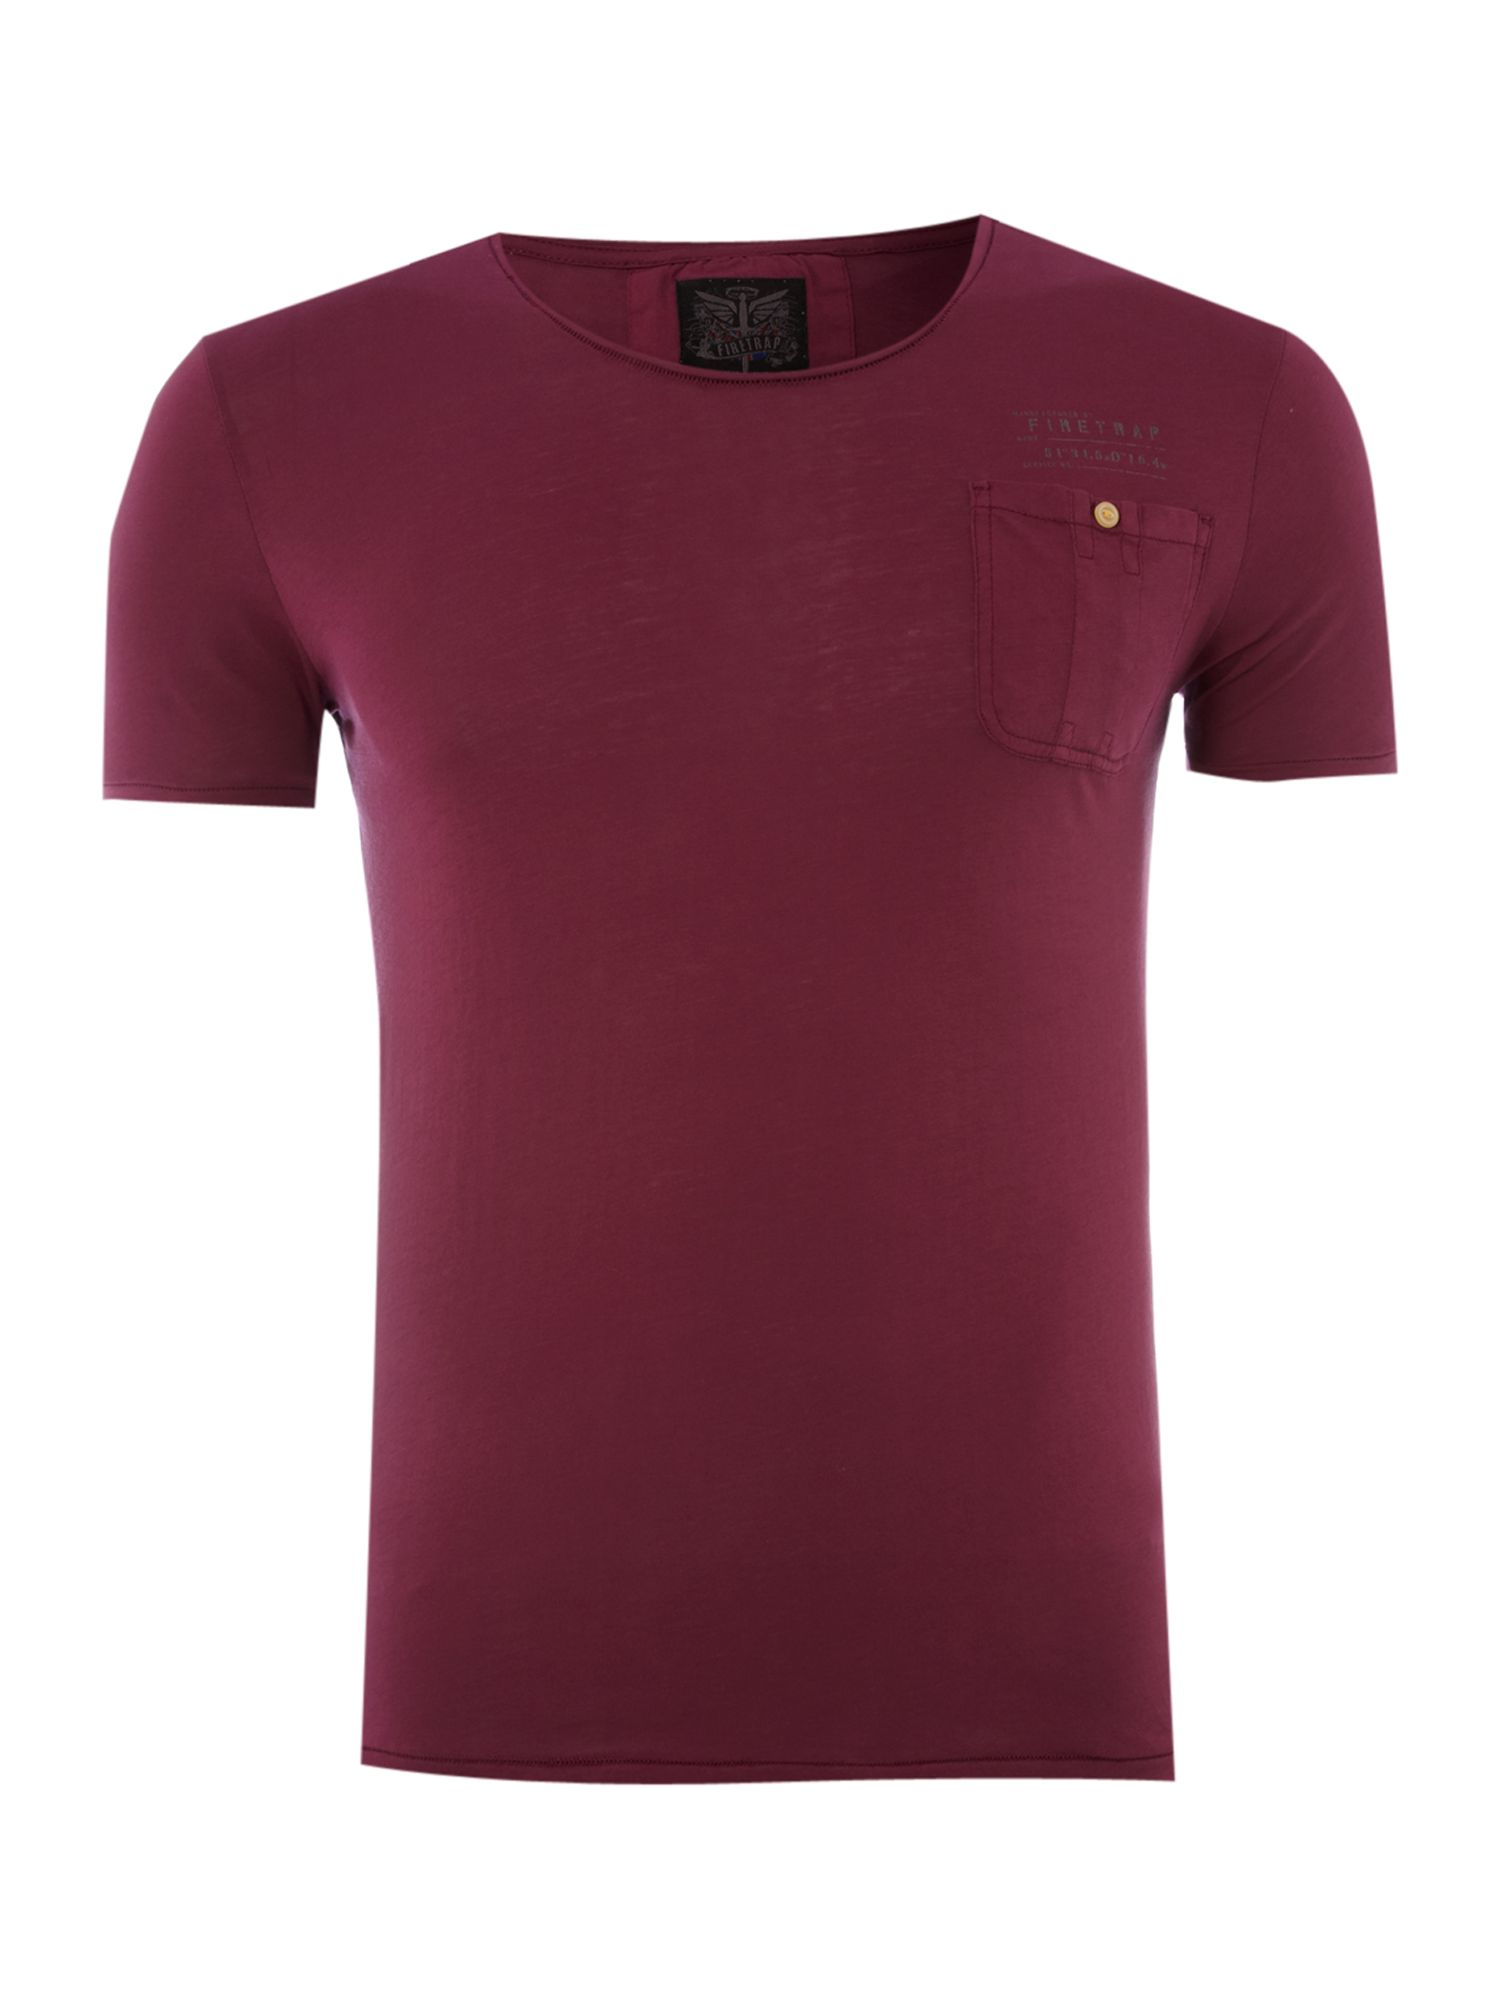 Firetrap Mens Firetrap 1-pocket T-shirt, Maroon product image